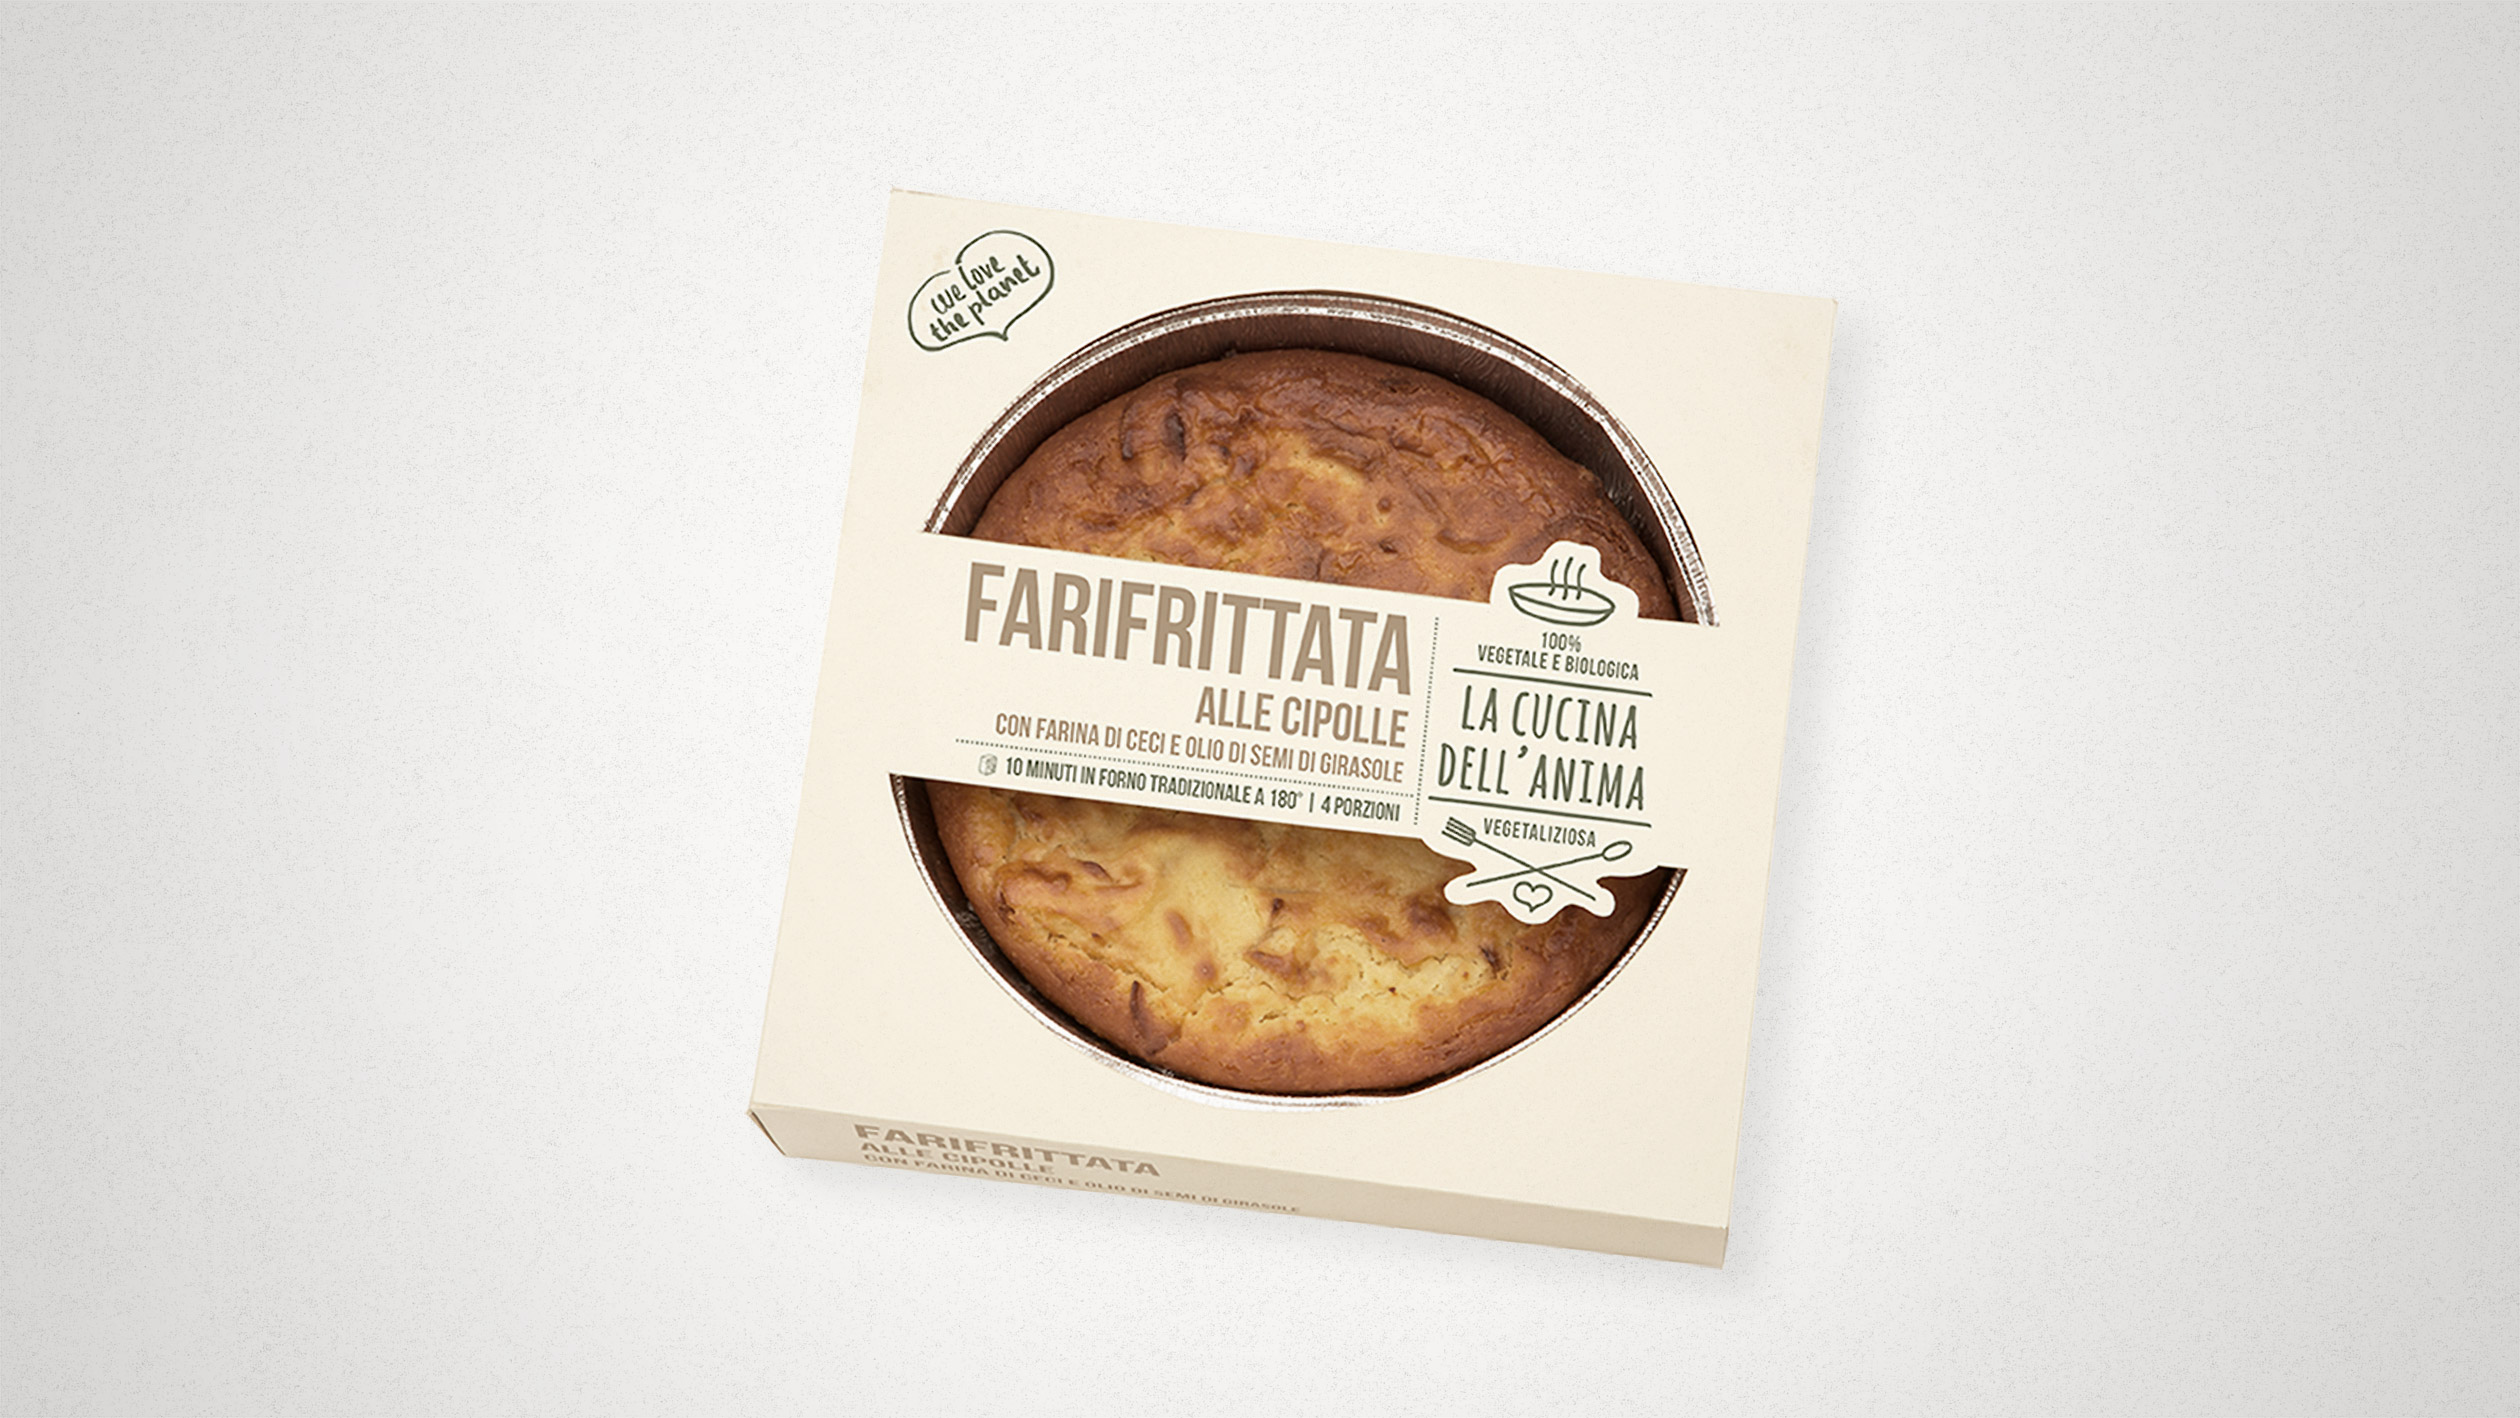 05_package_cucina-dell-anima_pluscommunications_trento